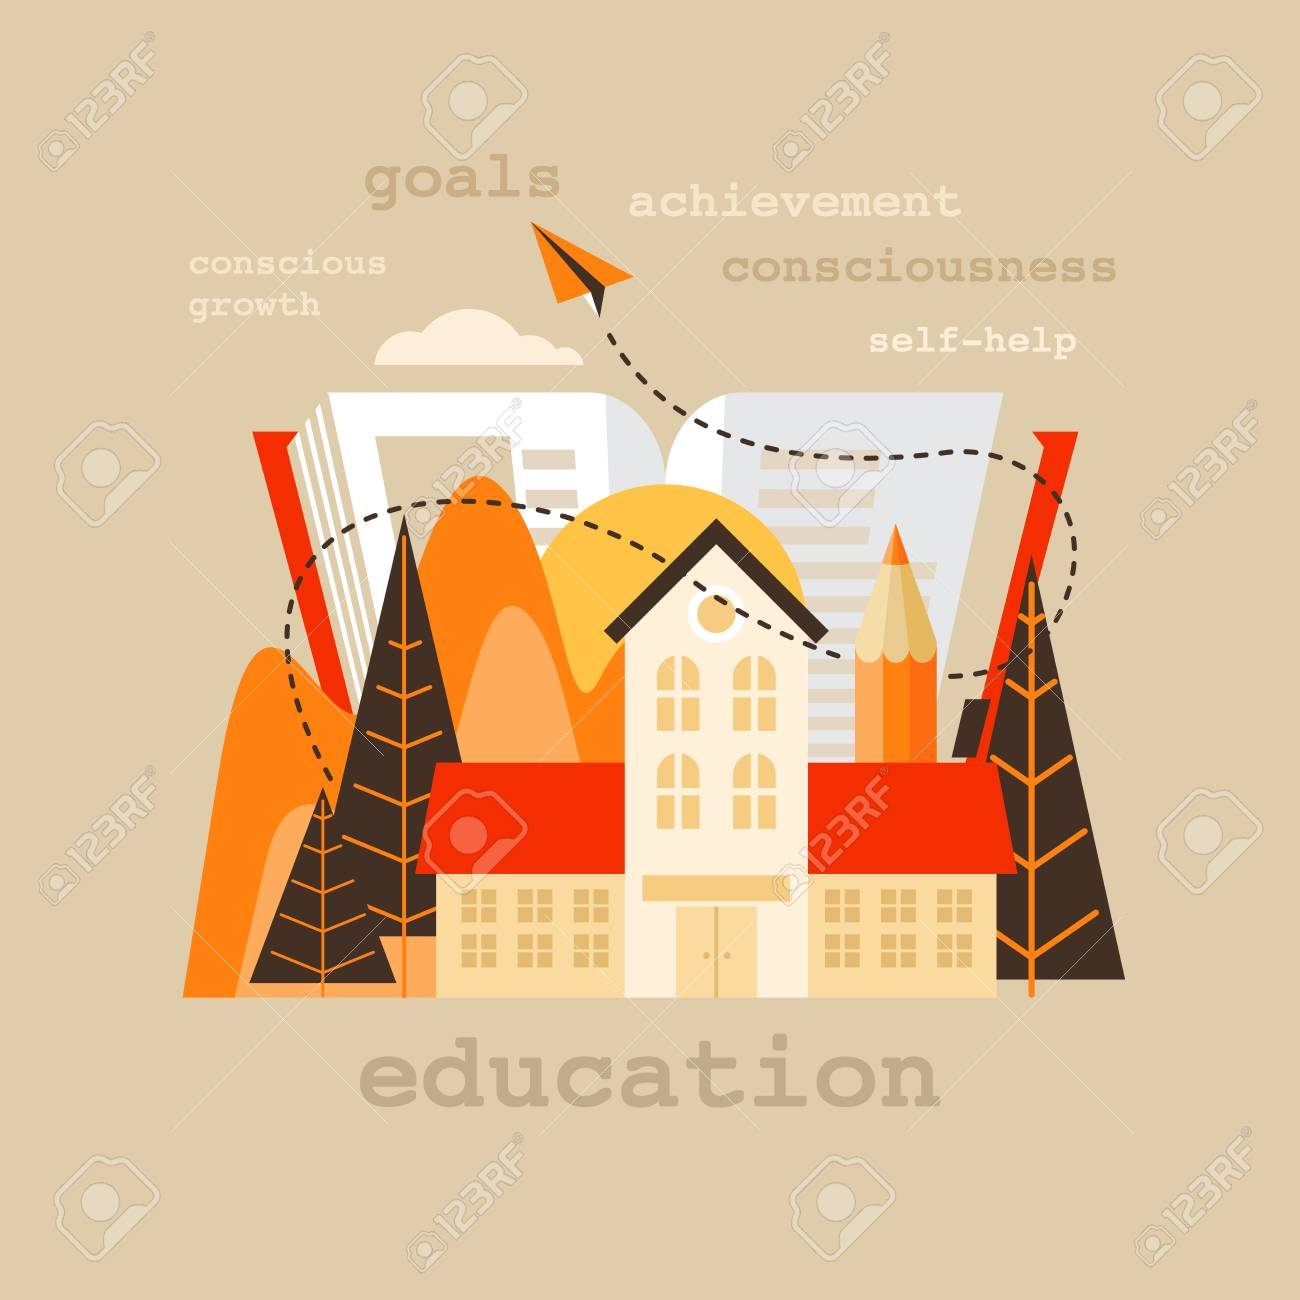 School and education vector flat design single isolated icon,